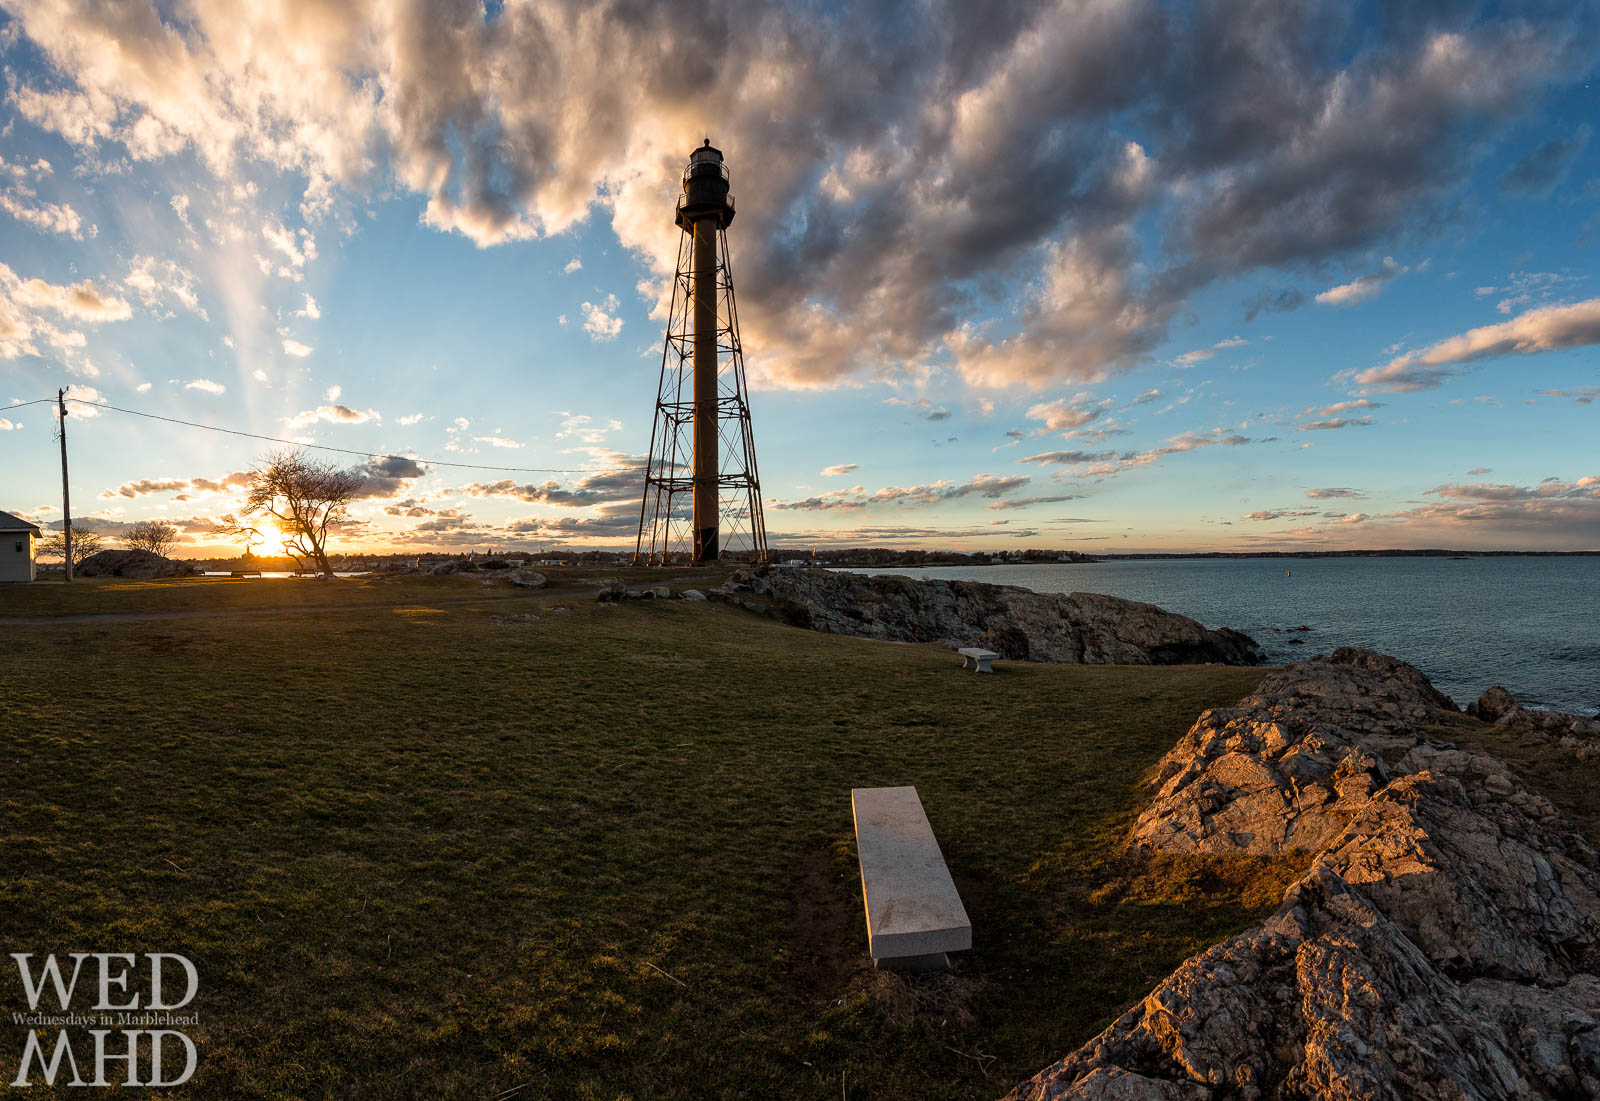 An early March sunset takes shape at Chandler Hovey Park with the lighthouse backed by clouds and the stone bench lit in gold